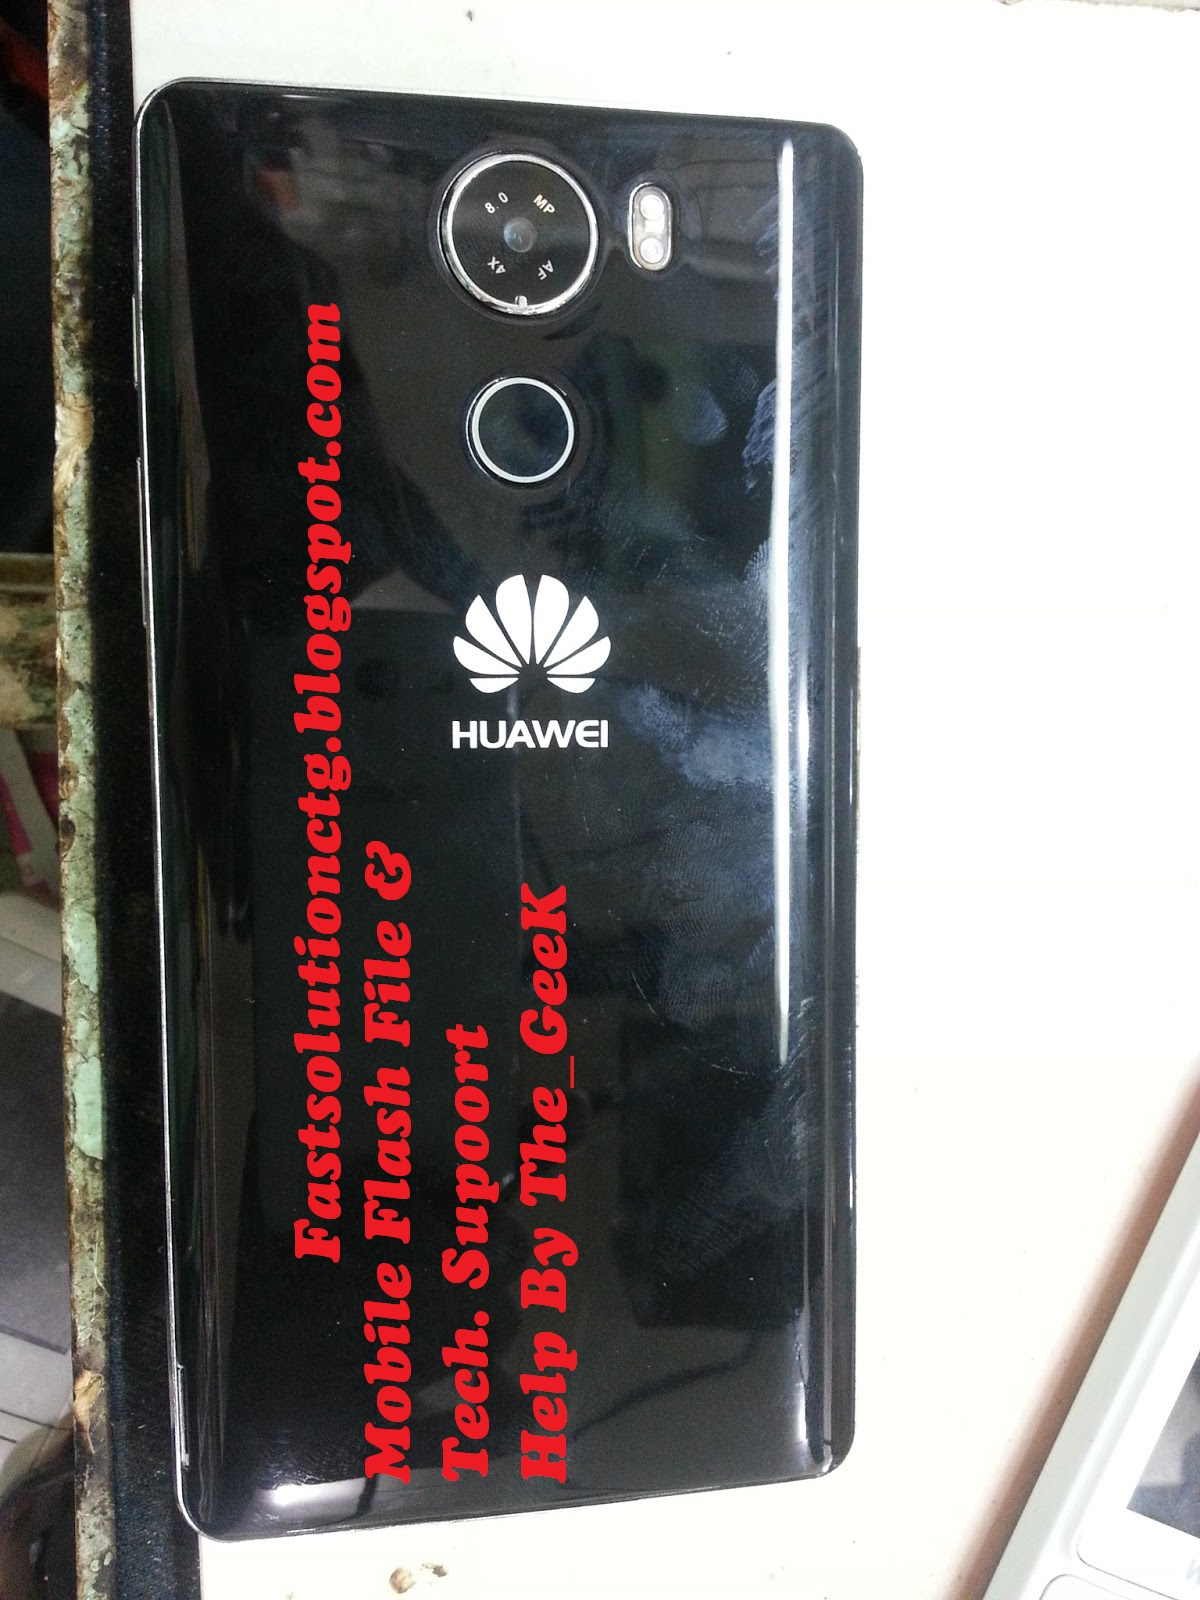 Huawei United Kingdom - Building a Fully Connected ...